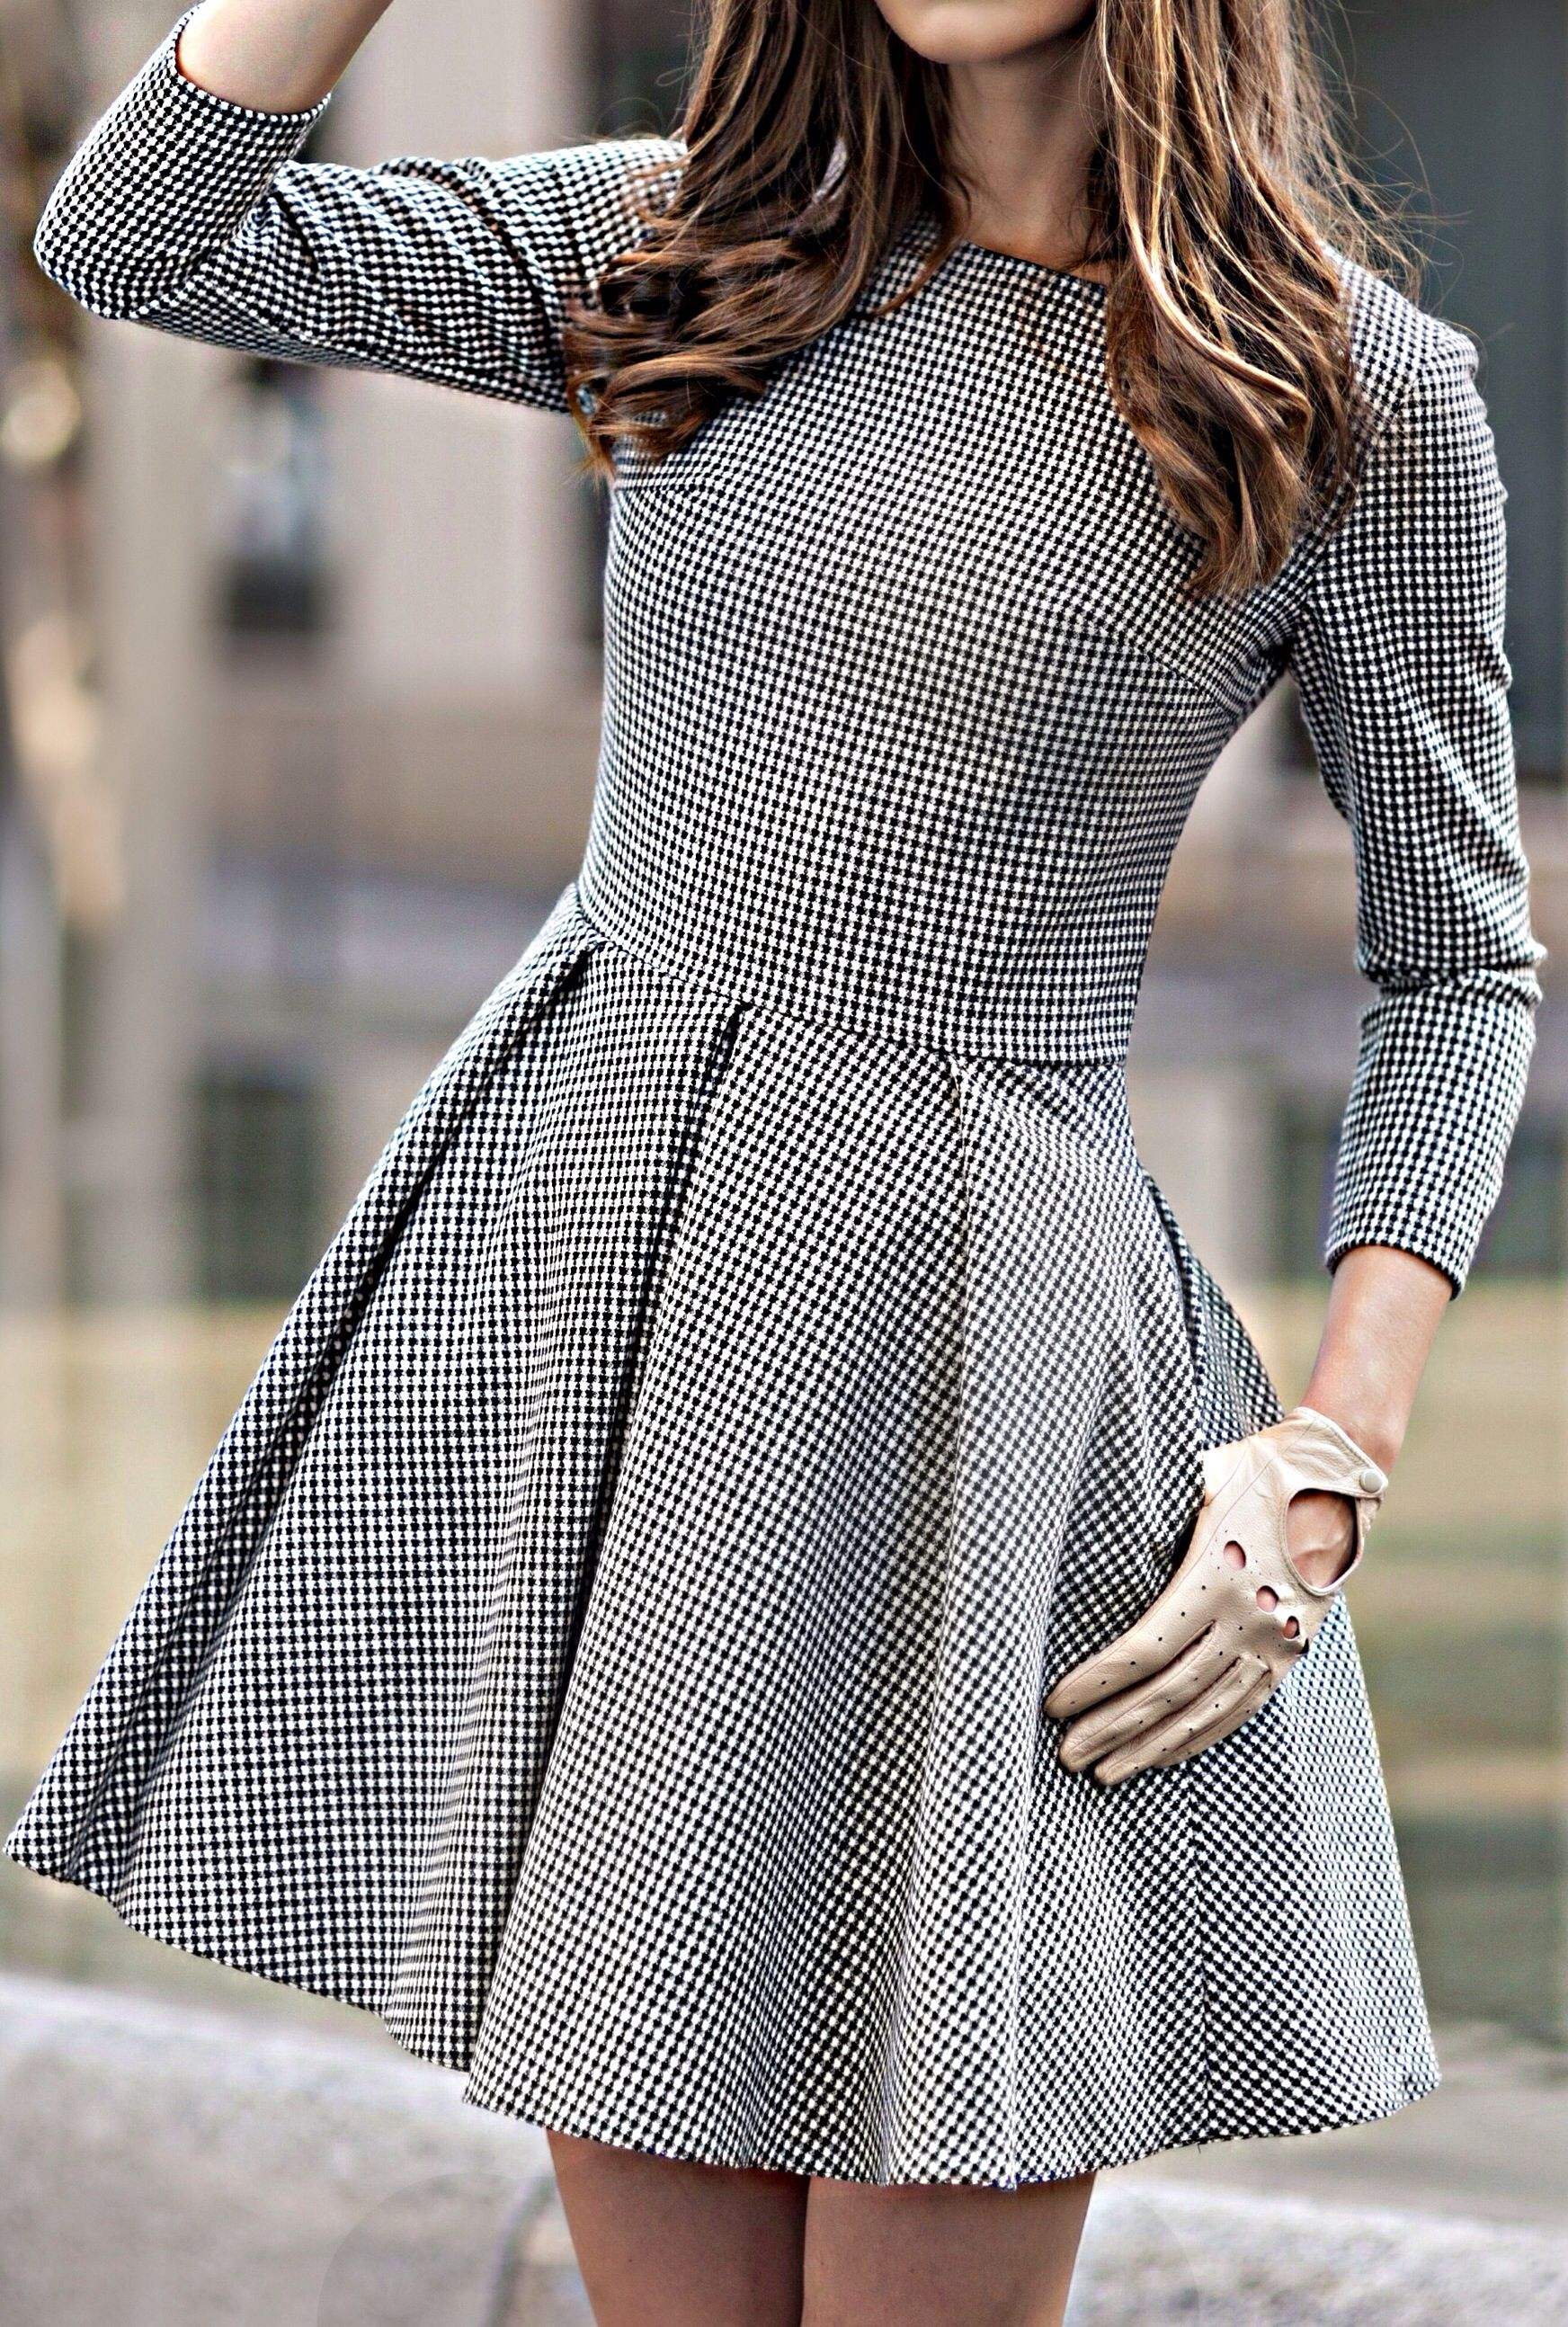 Gingham Flare Dress Riding Gloves In 2019 Fashion